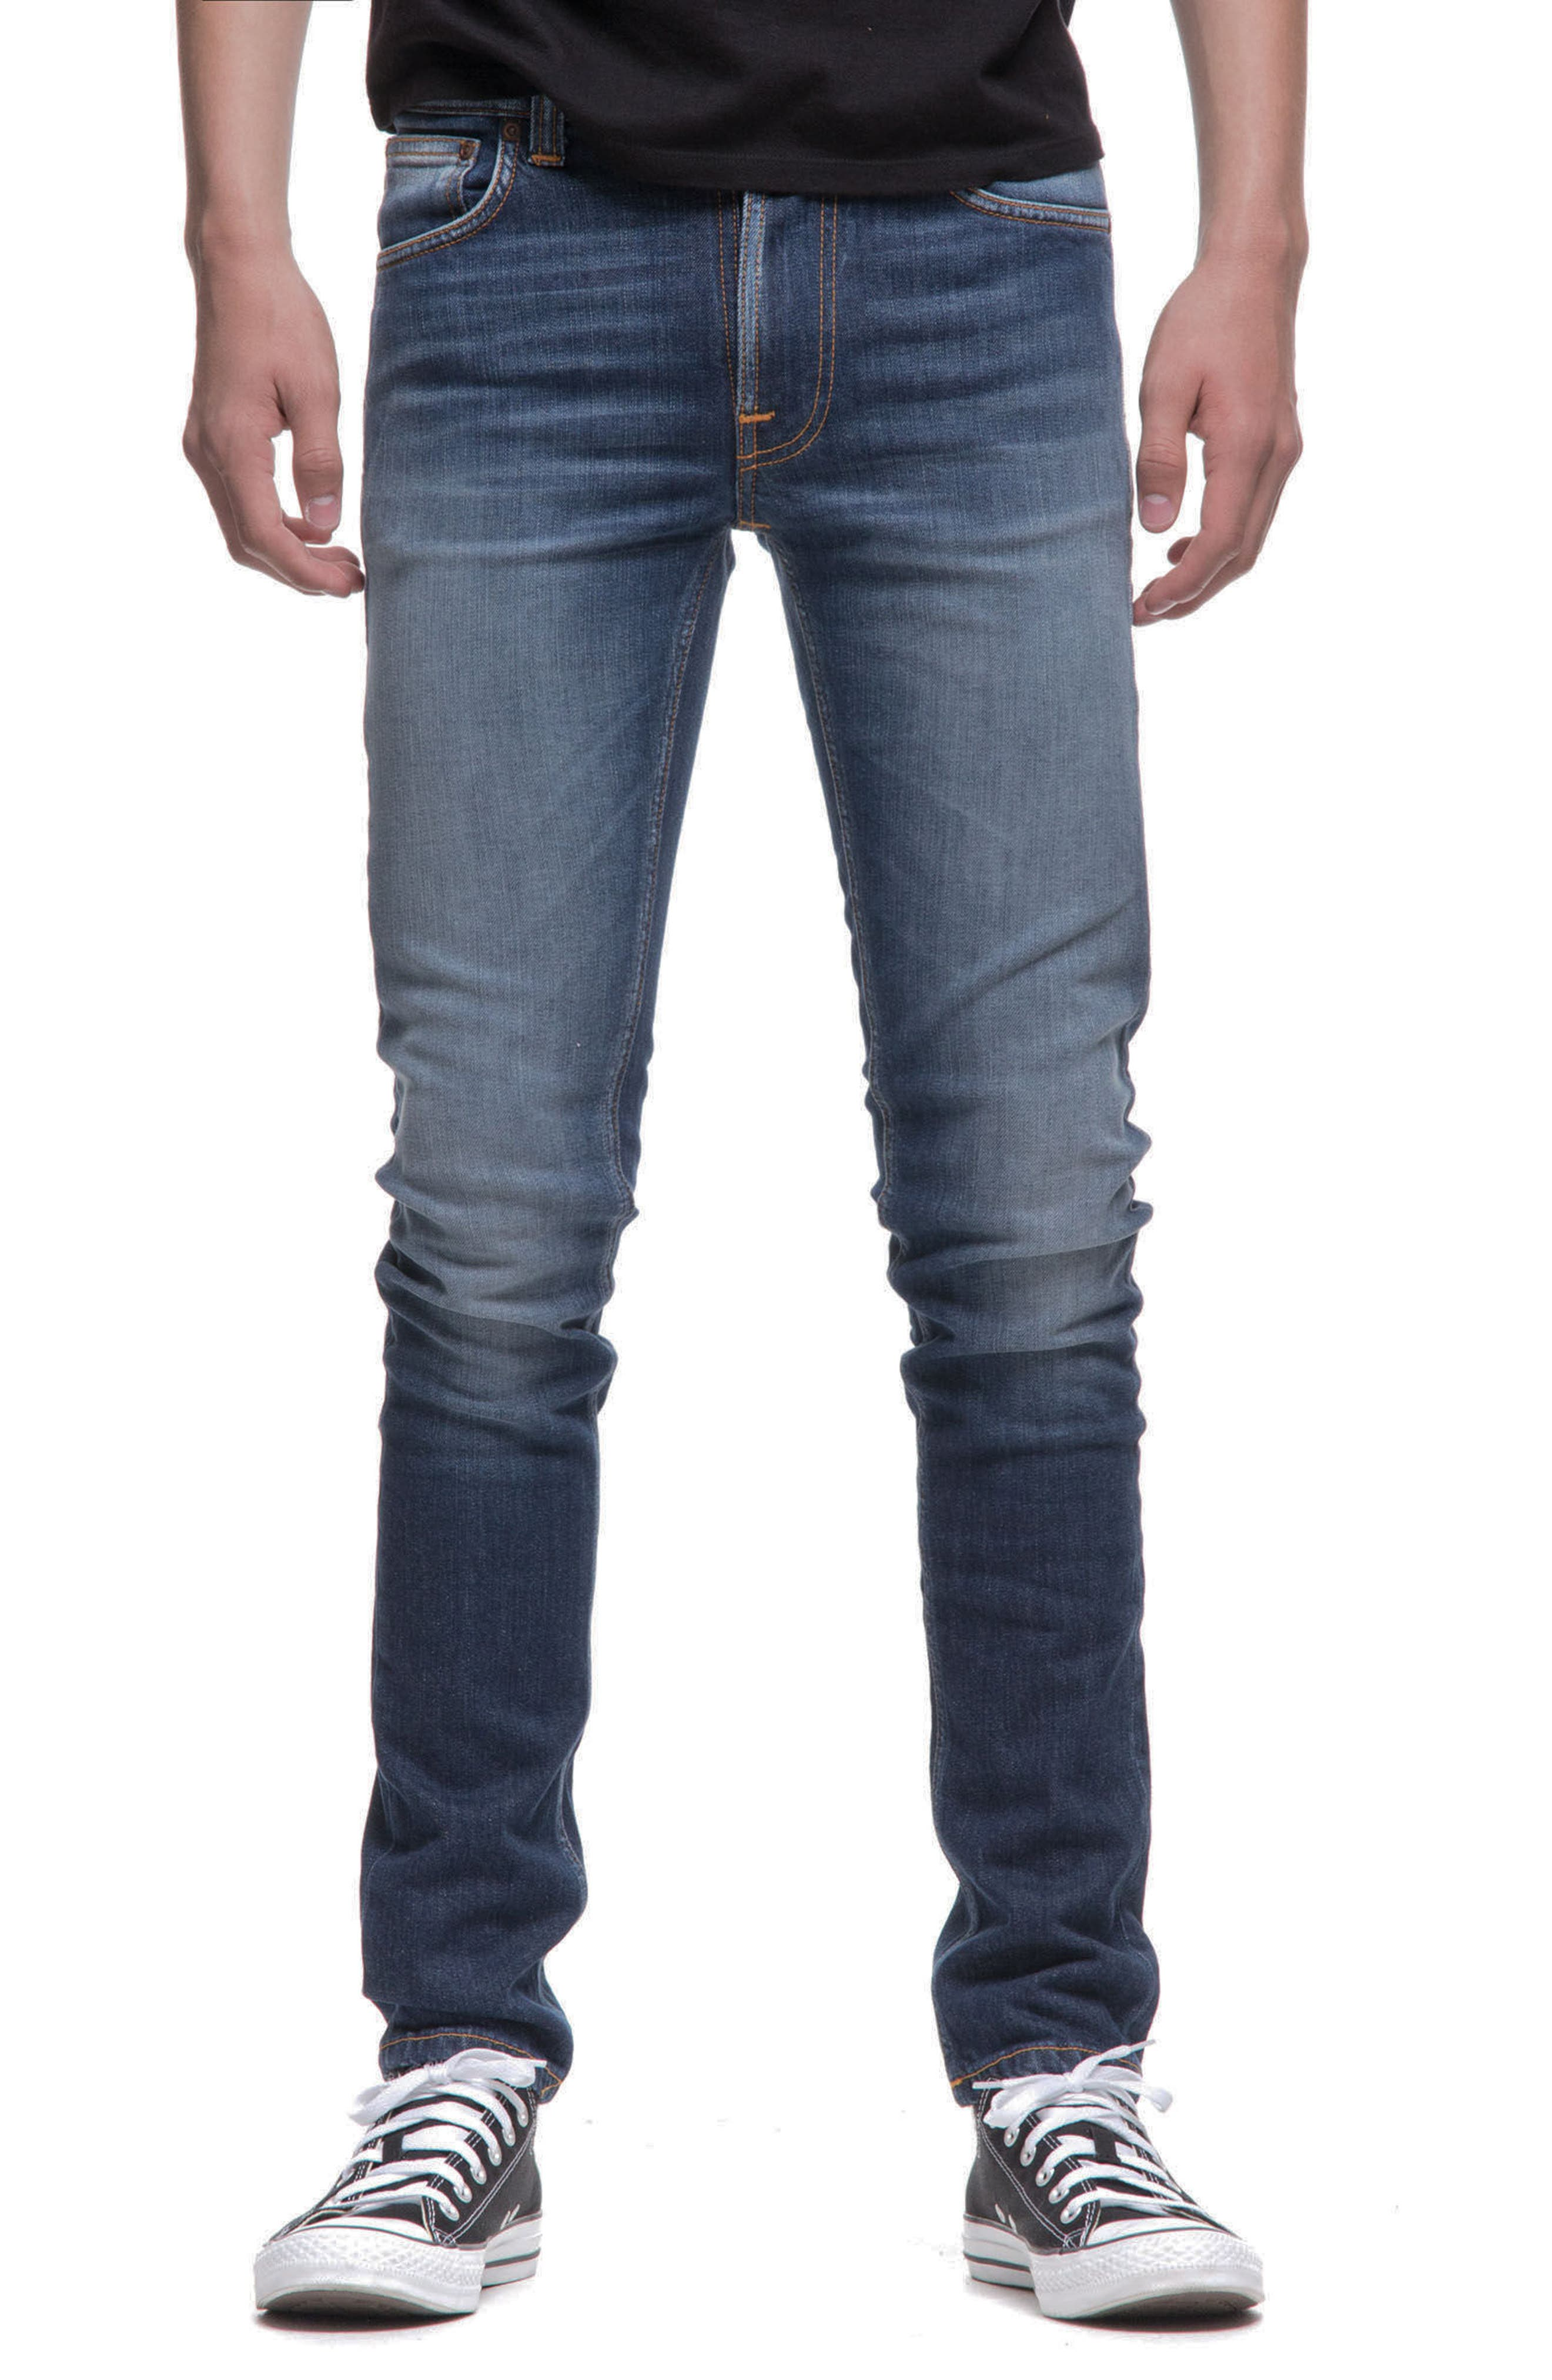 Main Image - Nudie Jeans Lean Dean Slouchy Slim Fit Jeans (Blue Ridge)